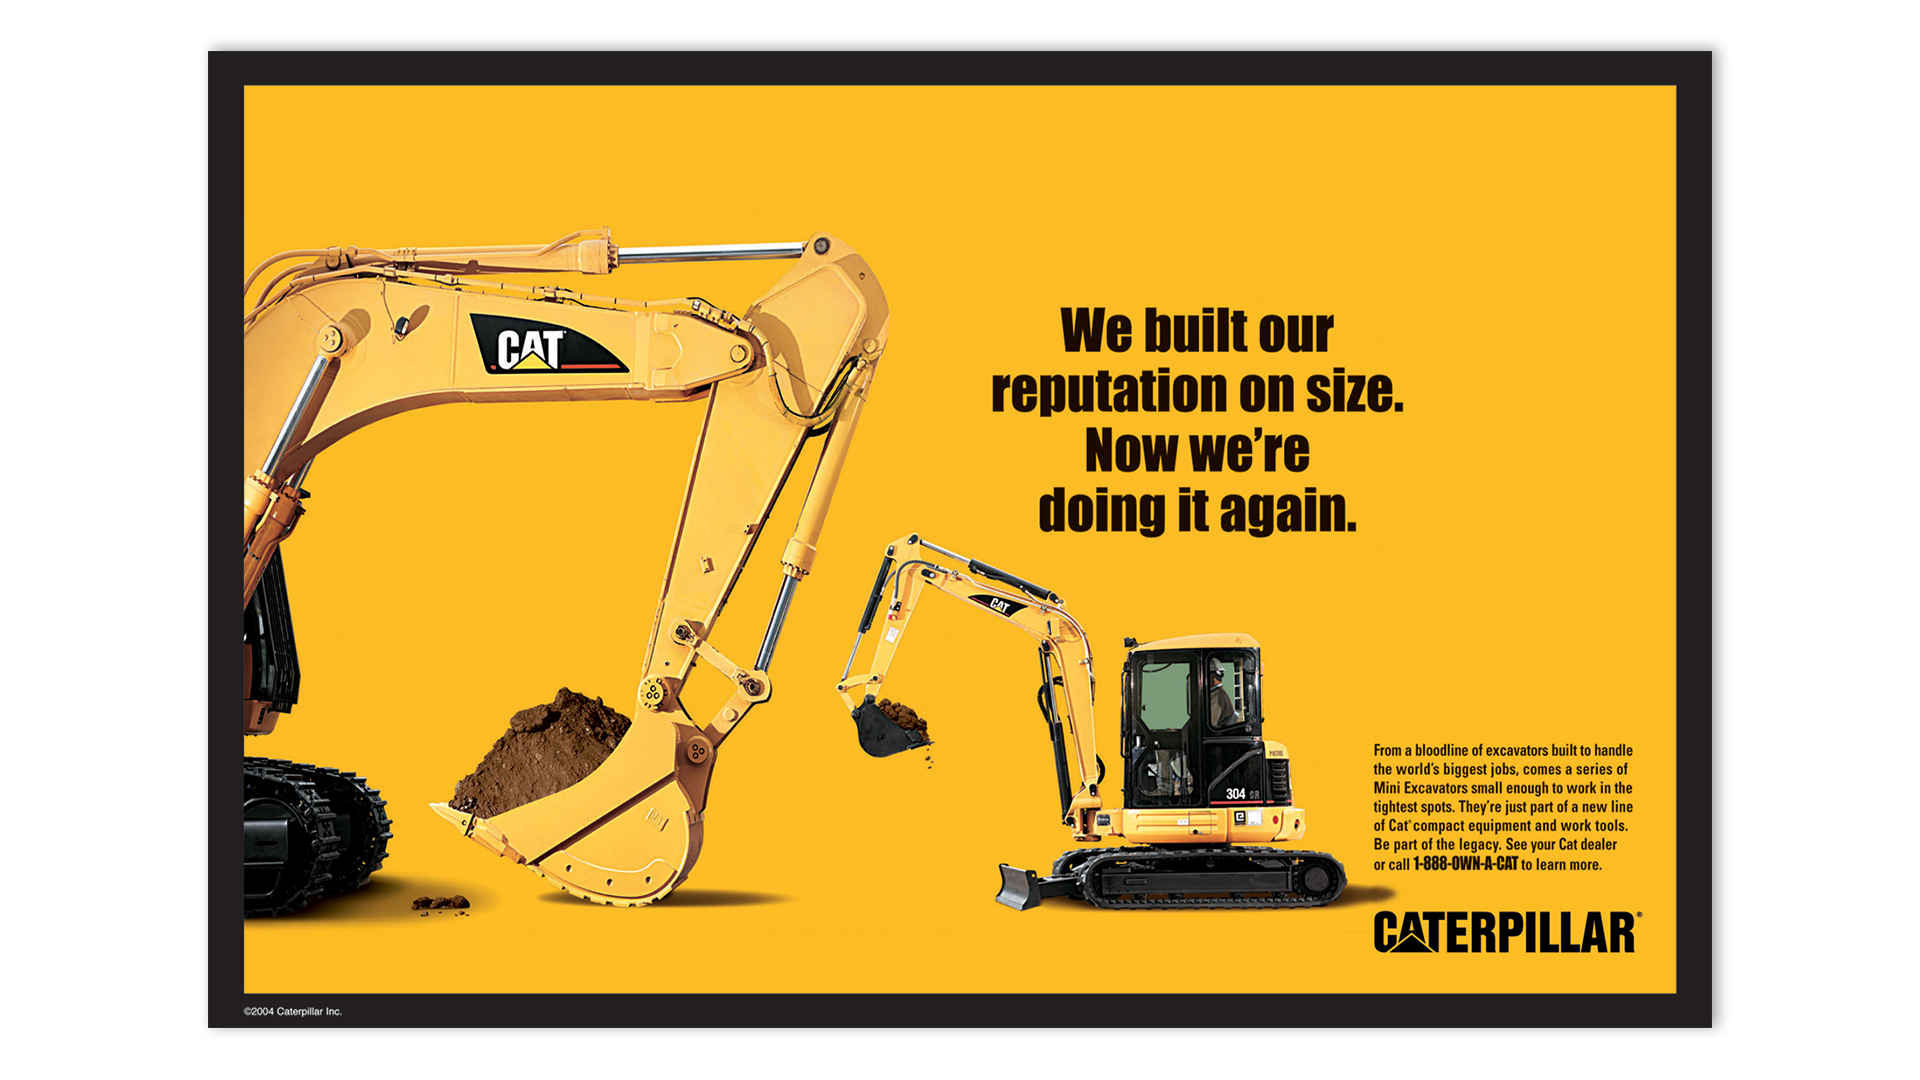 CAT Caterpillar equipment new compact size campaign Poster